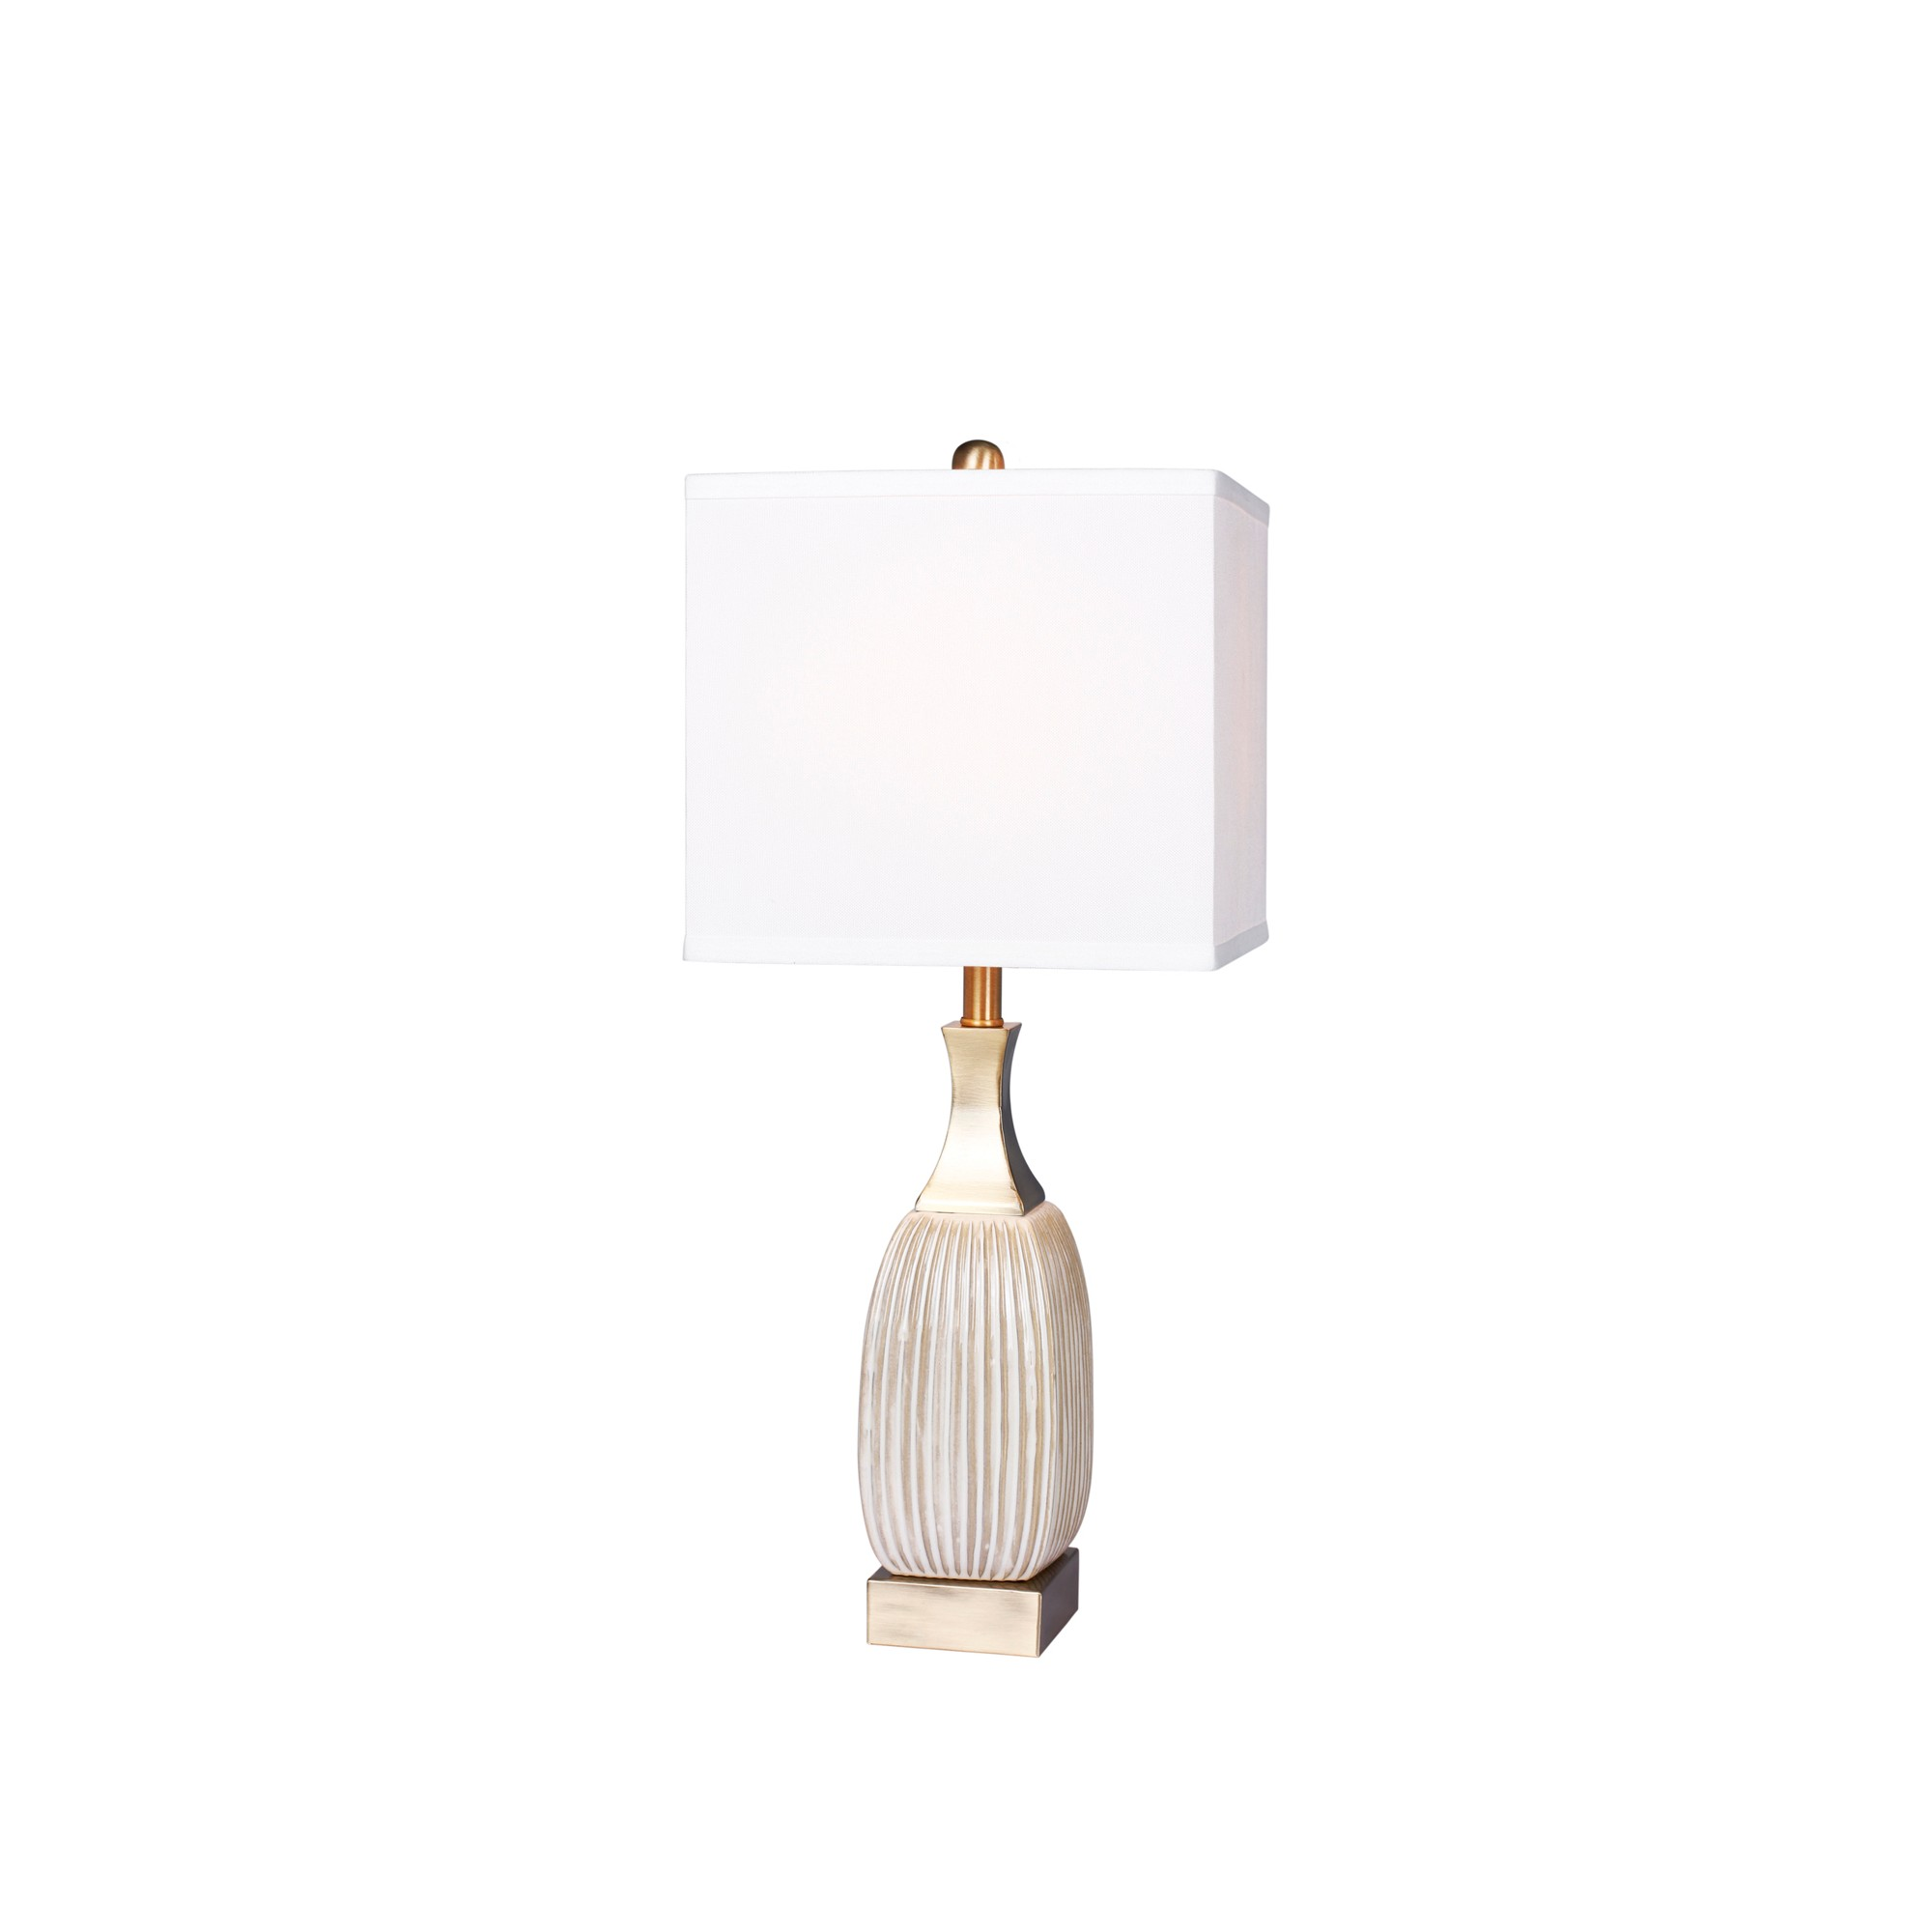 Vertically Ribbed Aged Ceramic Table Lamp Antique White (Lamp Only) - Fangio Lighting